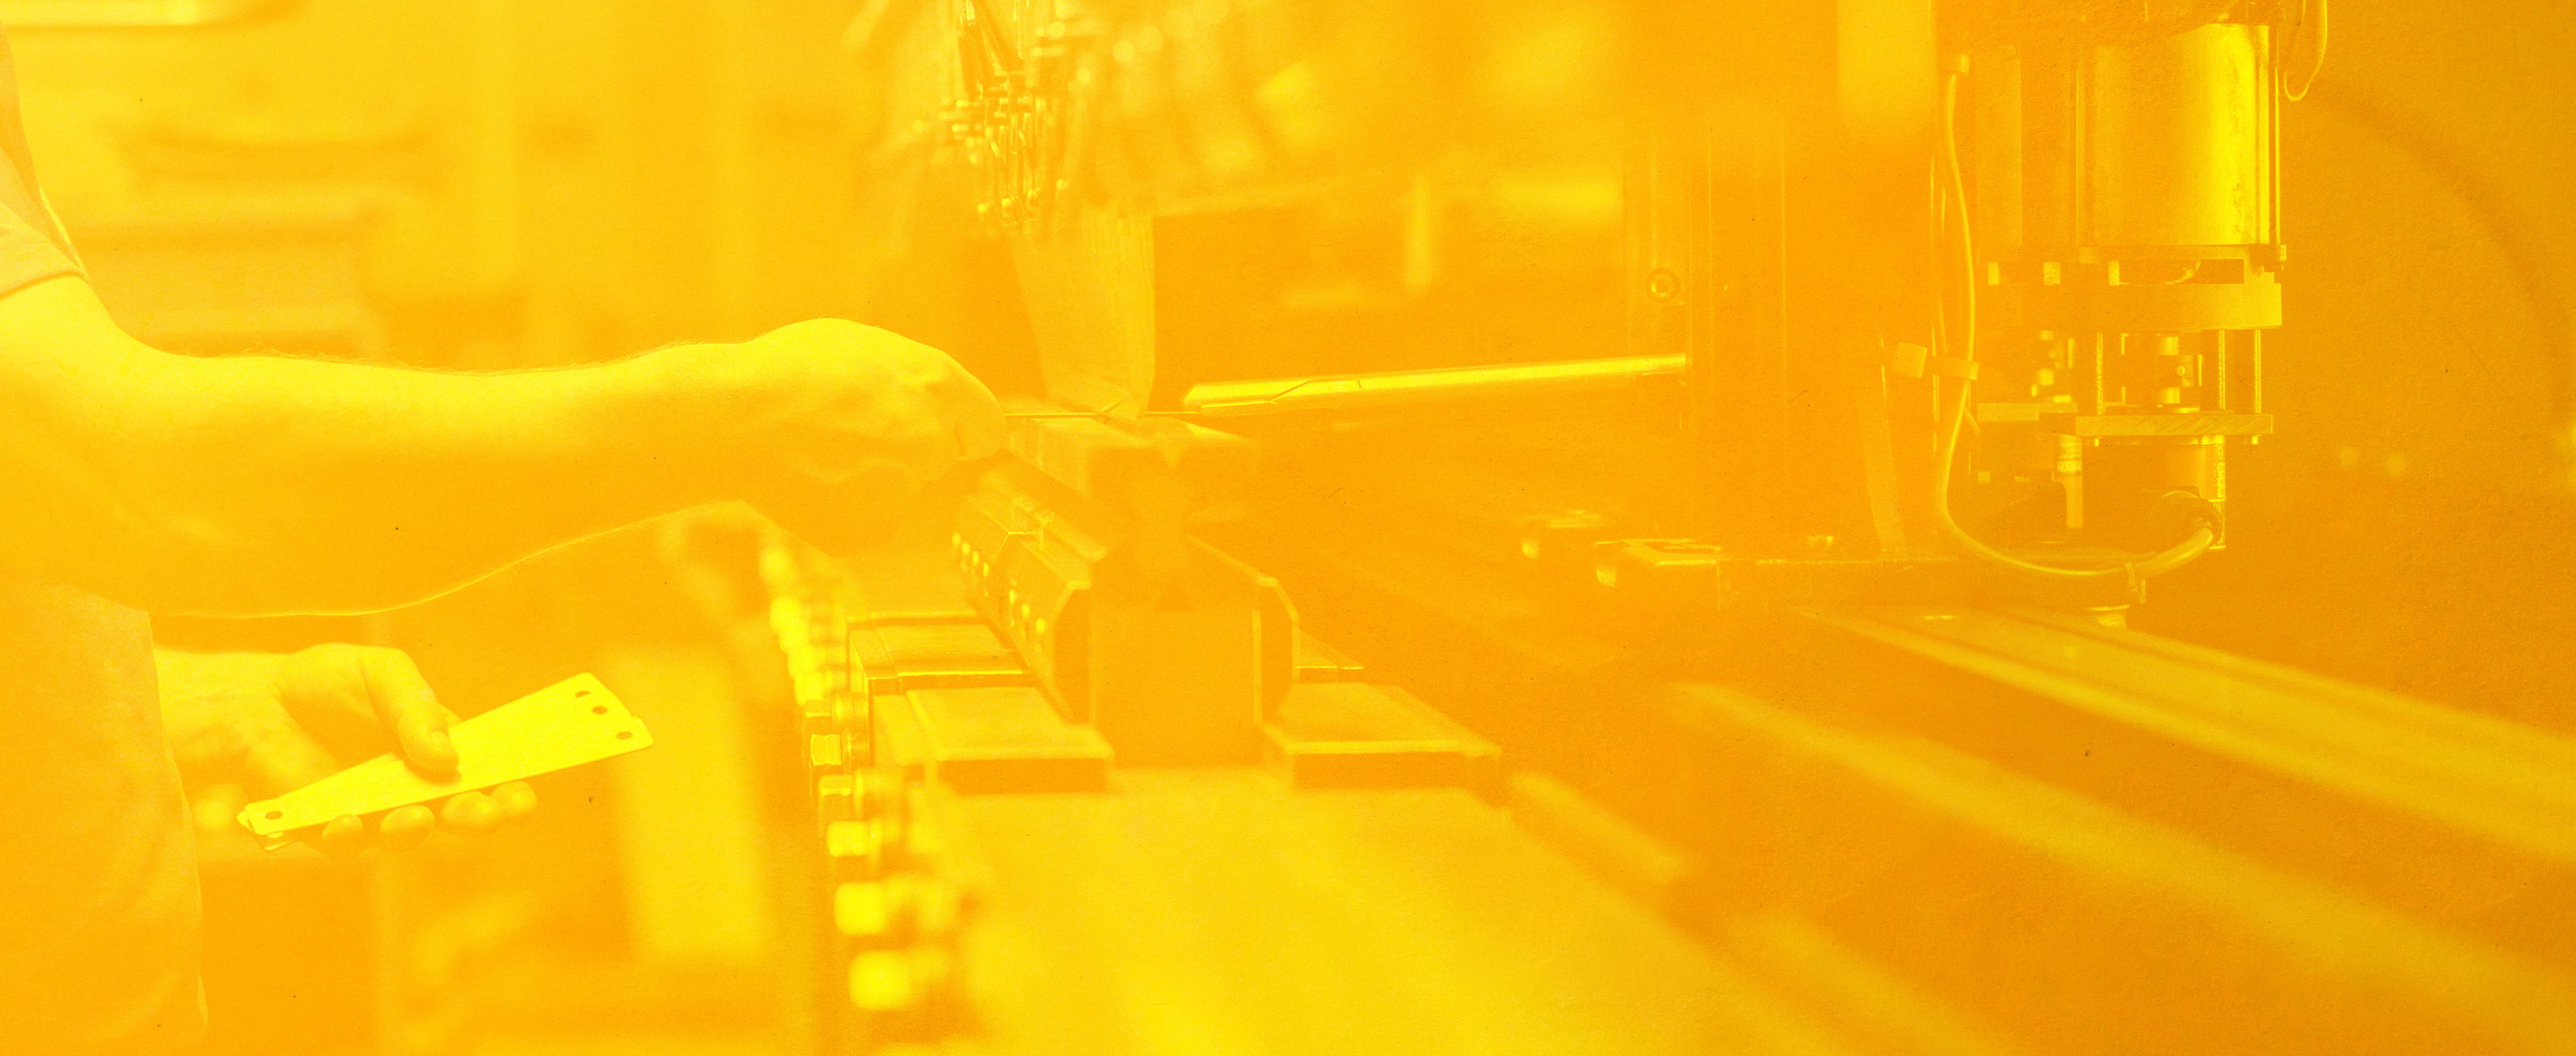 A closeup of a worker's hands using a machine in a factory with orange overlay